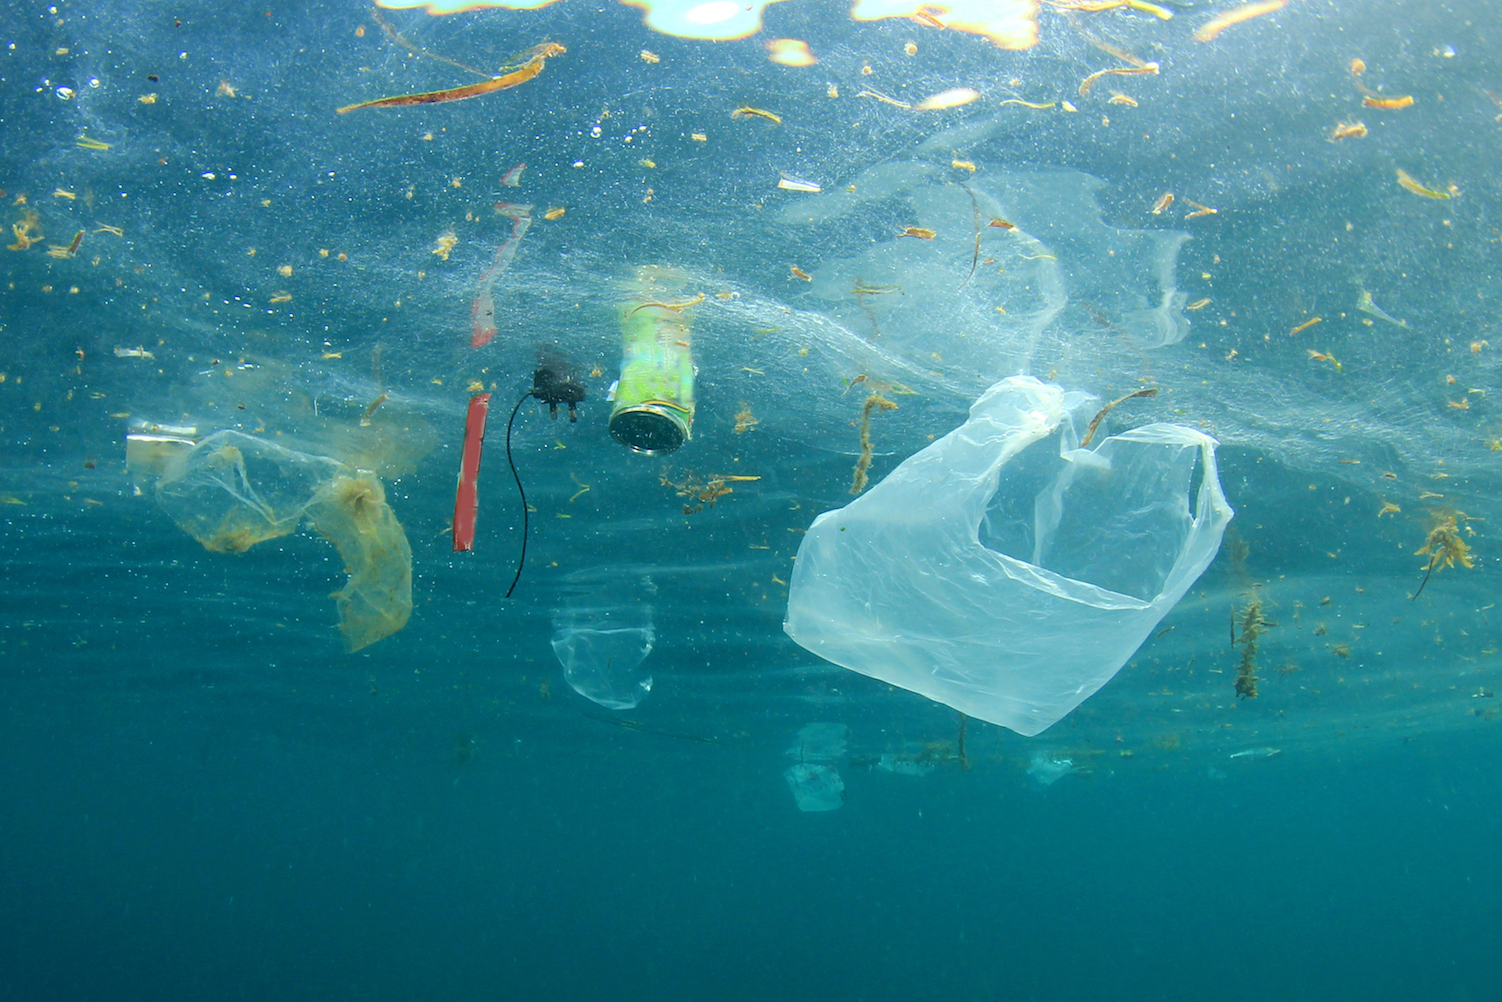 a new study from the Alfred Wegener Institute has set out to determine where marine litter is most concentrated and which species it affects.